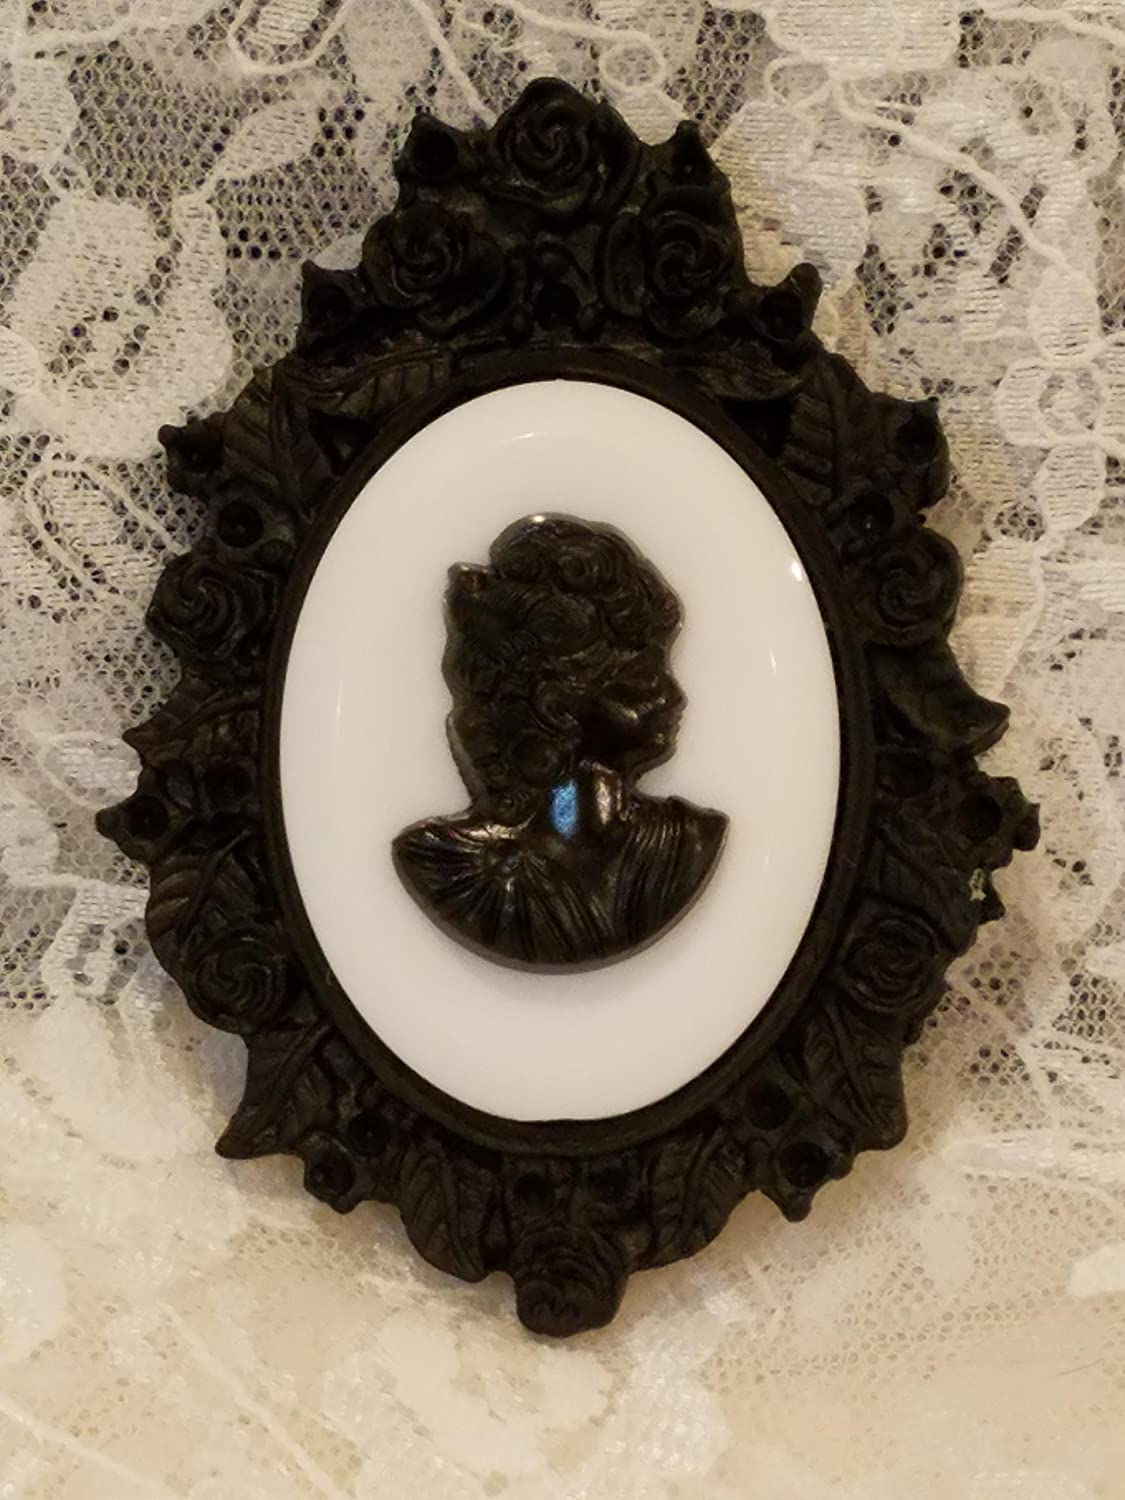 580f0a91f21 Amazon.com: Black and White Cameo Brooch in Black Resin Rose Frame: Handmade